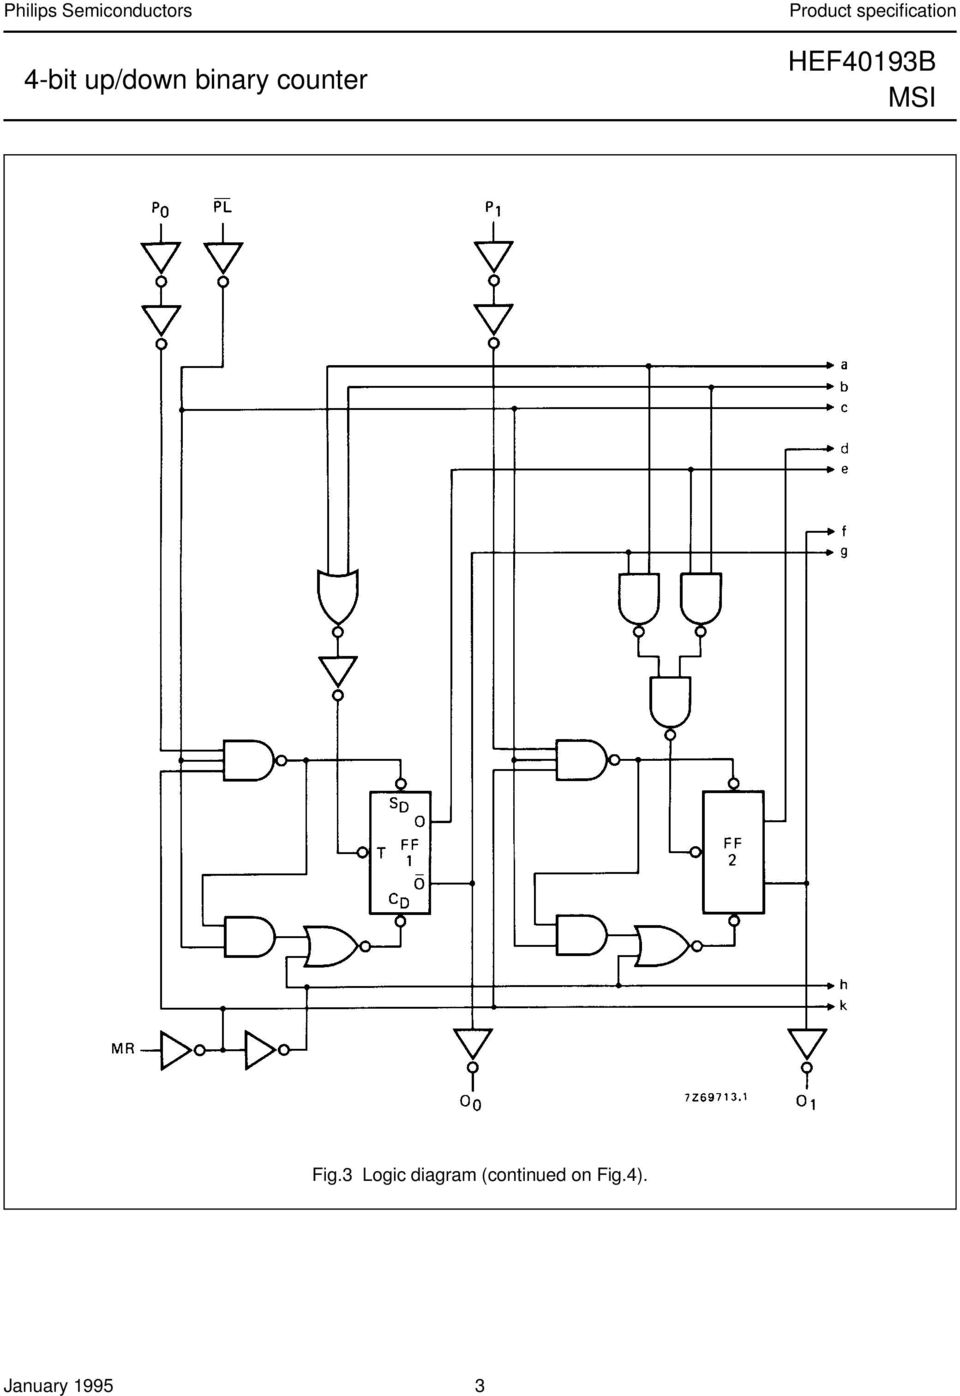 Data Sheet Hef40193b Msi 4 Bit Up Down Binary Counter For A Logic Diagram Fig4 Continued From Fig3 January